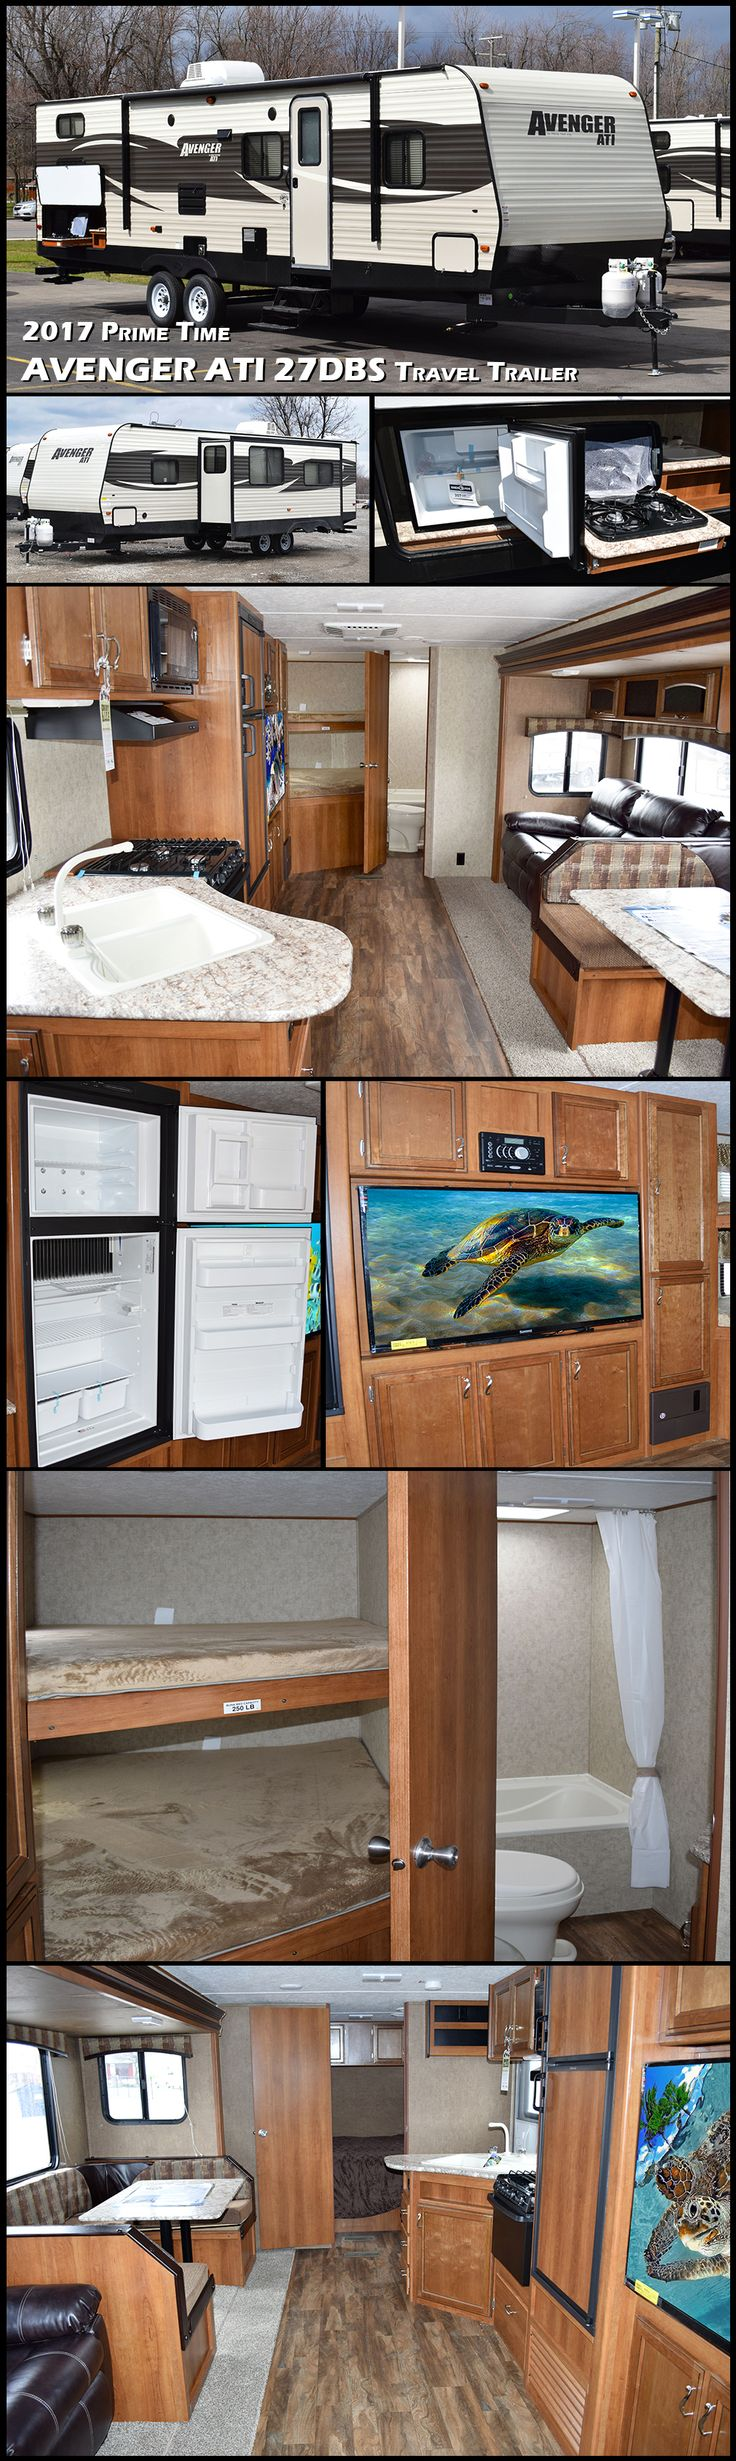 Enjoy traveling and experiencing new adventures in this 2017 Prime Time Avenger ATI bunkhouse travel trailer model 27DBS! This unit features a set of double bed bunks, a large slide out, and an outdoor kitchen to enjoy!